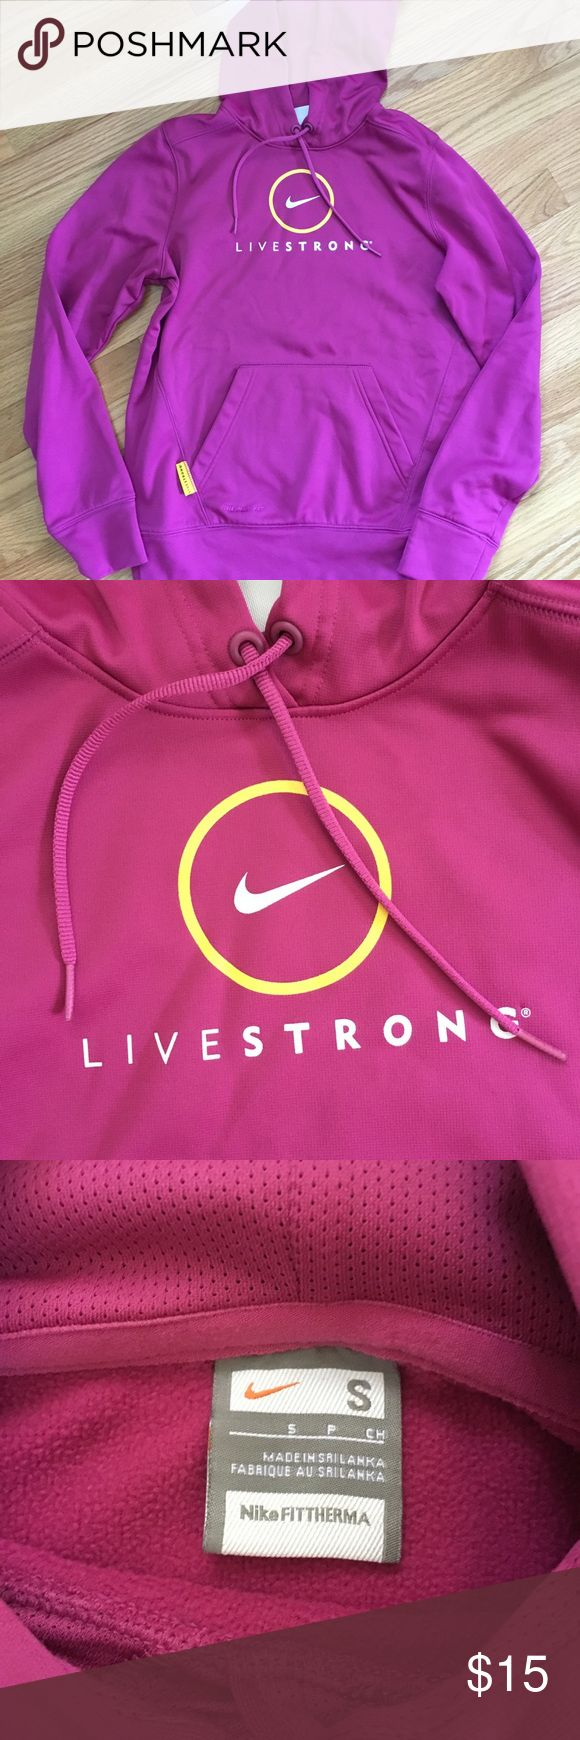 NWOT Nike Livestrong Pink Hoodie - Small NWOT Nike Livestrong Pink Hoodie - Small. Therma-Fit technology. Never been worn. Perfect for going back and forth to the gym Nike Tops Sweatshirts & Hoodies